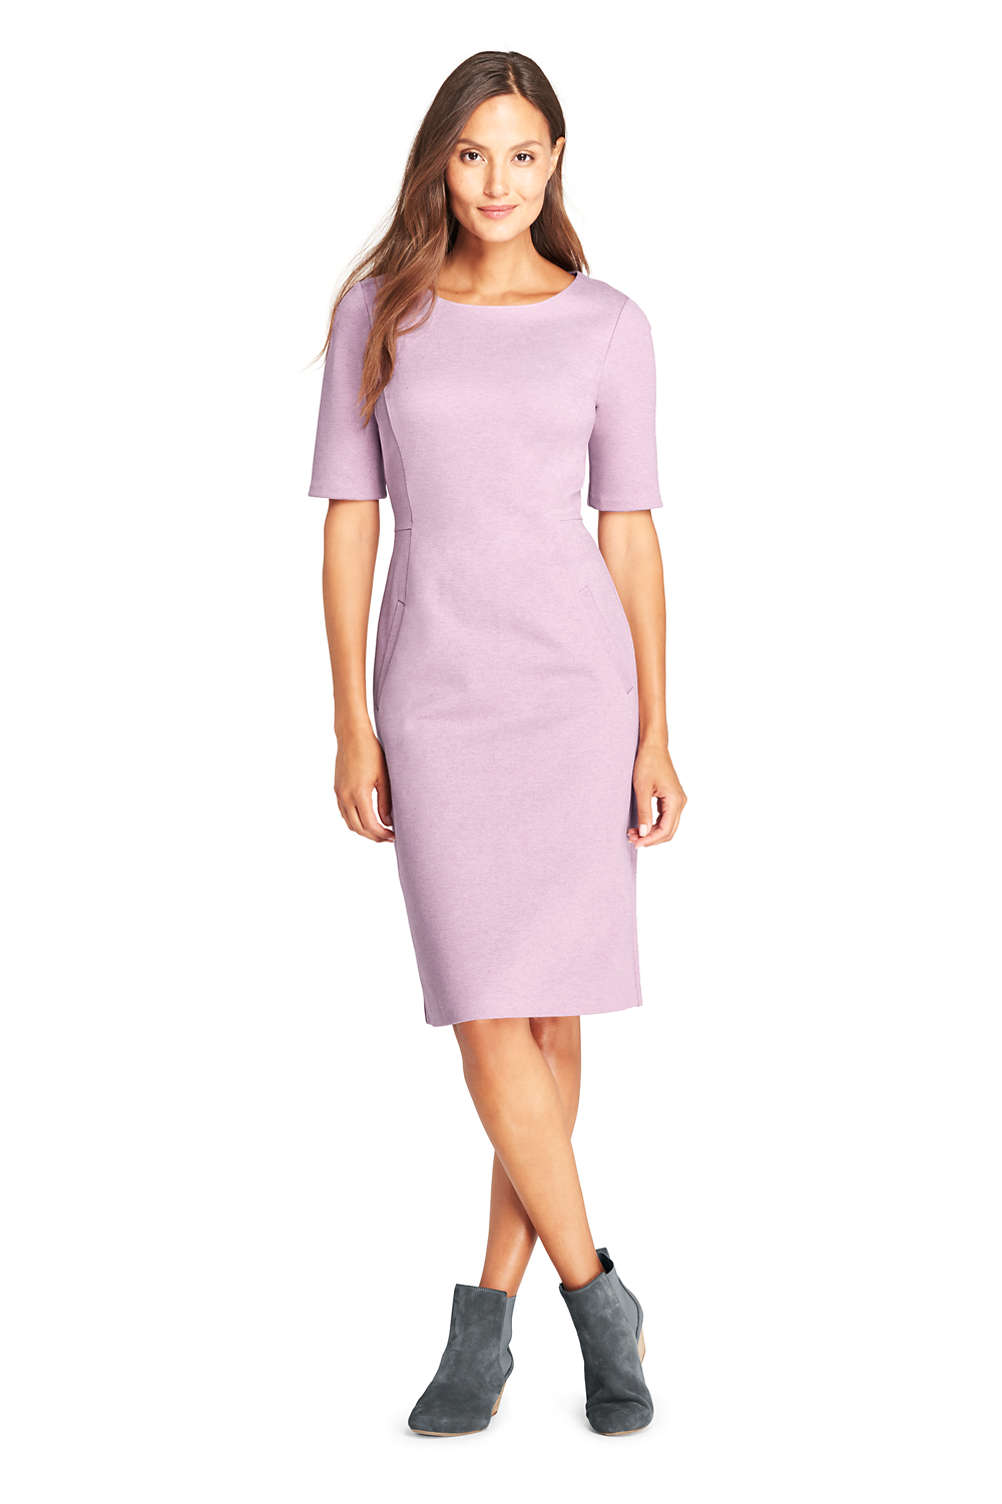 6de1b88316f Women's Ponte Knit Sheath Dress with Elbow Sleeves from Lands' End